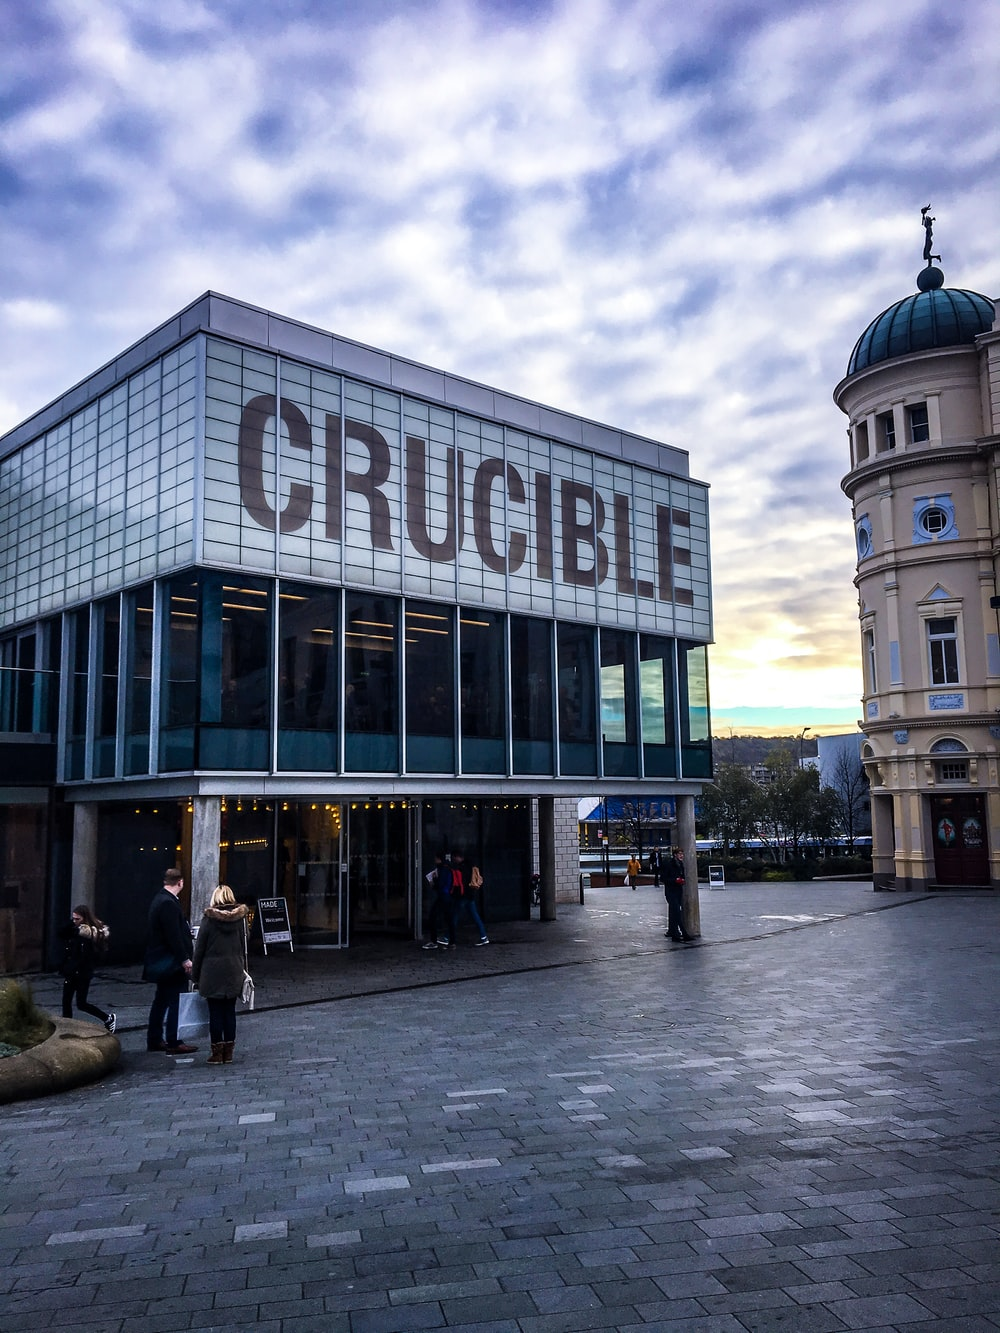 white and brown Crucible signage during daytime